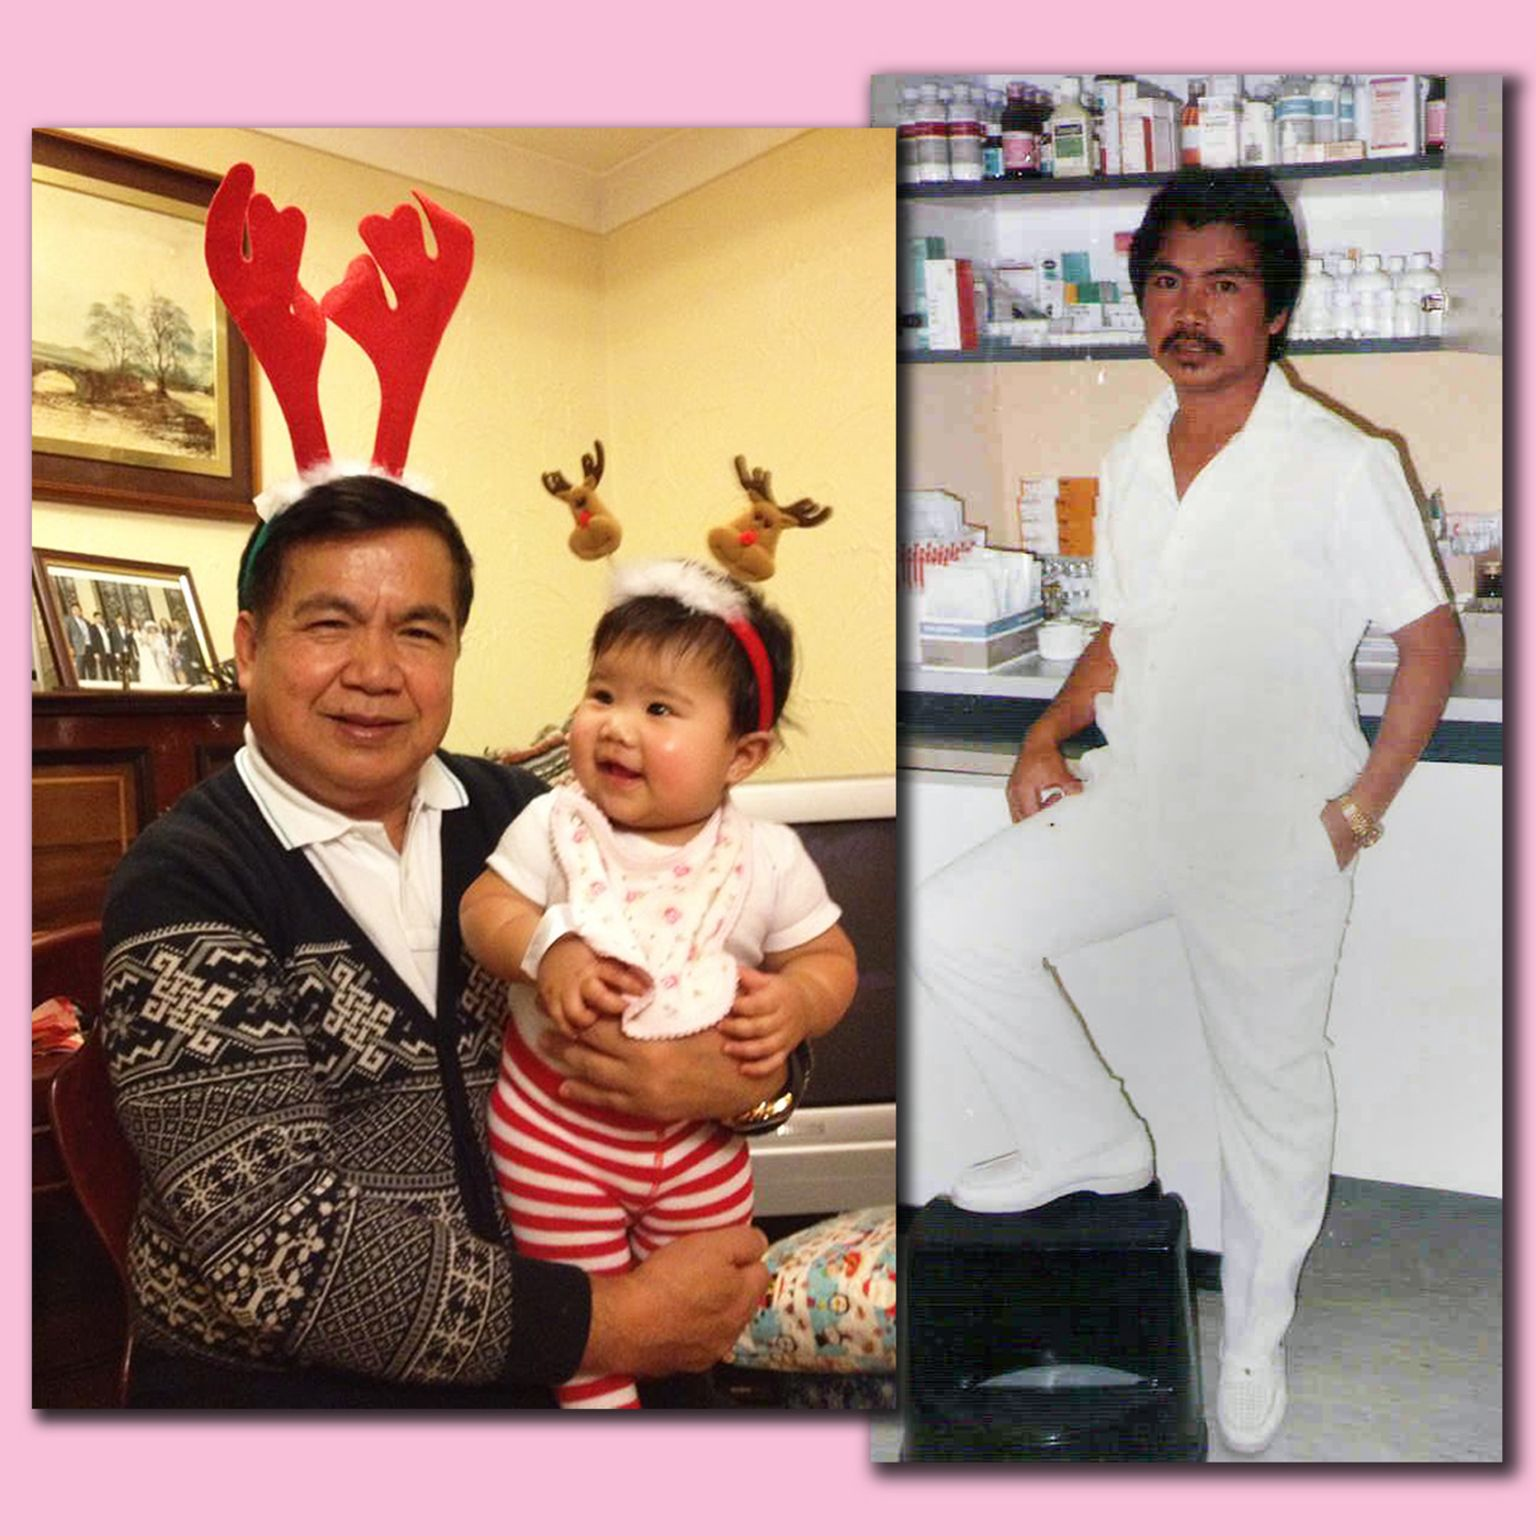 Policarpio with his granddaughter and as a younger man